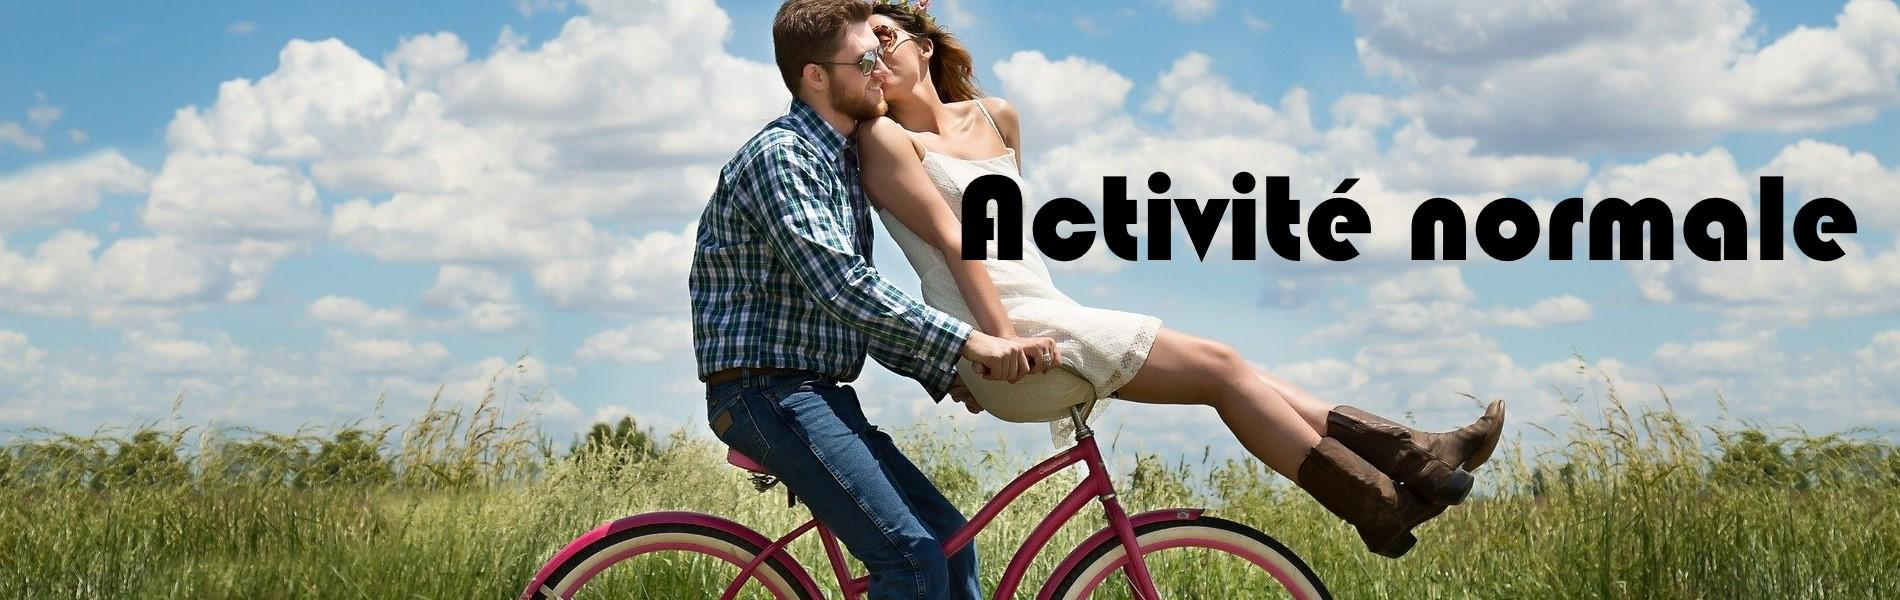 Activite normale